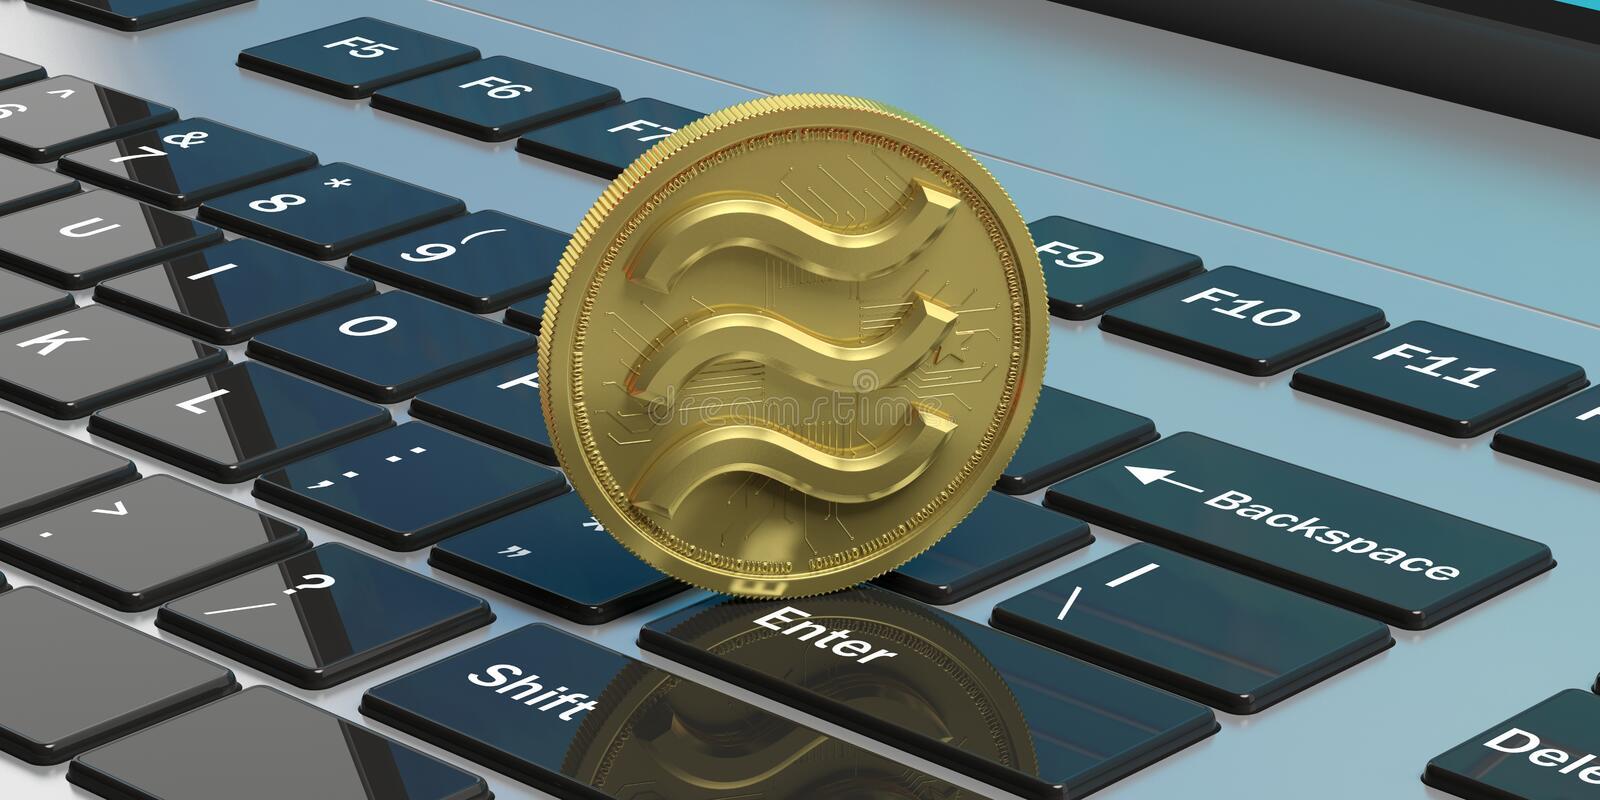 Libra virtual currency on computer keyboard background. 3d illustration. Libra gold coin with logo, digital cryptocurrency on computer keyboard background. 3d vector illustration